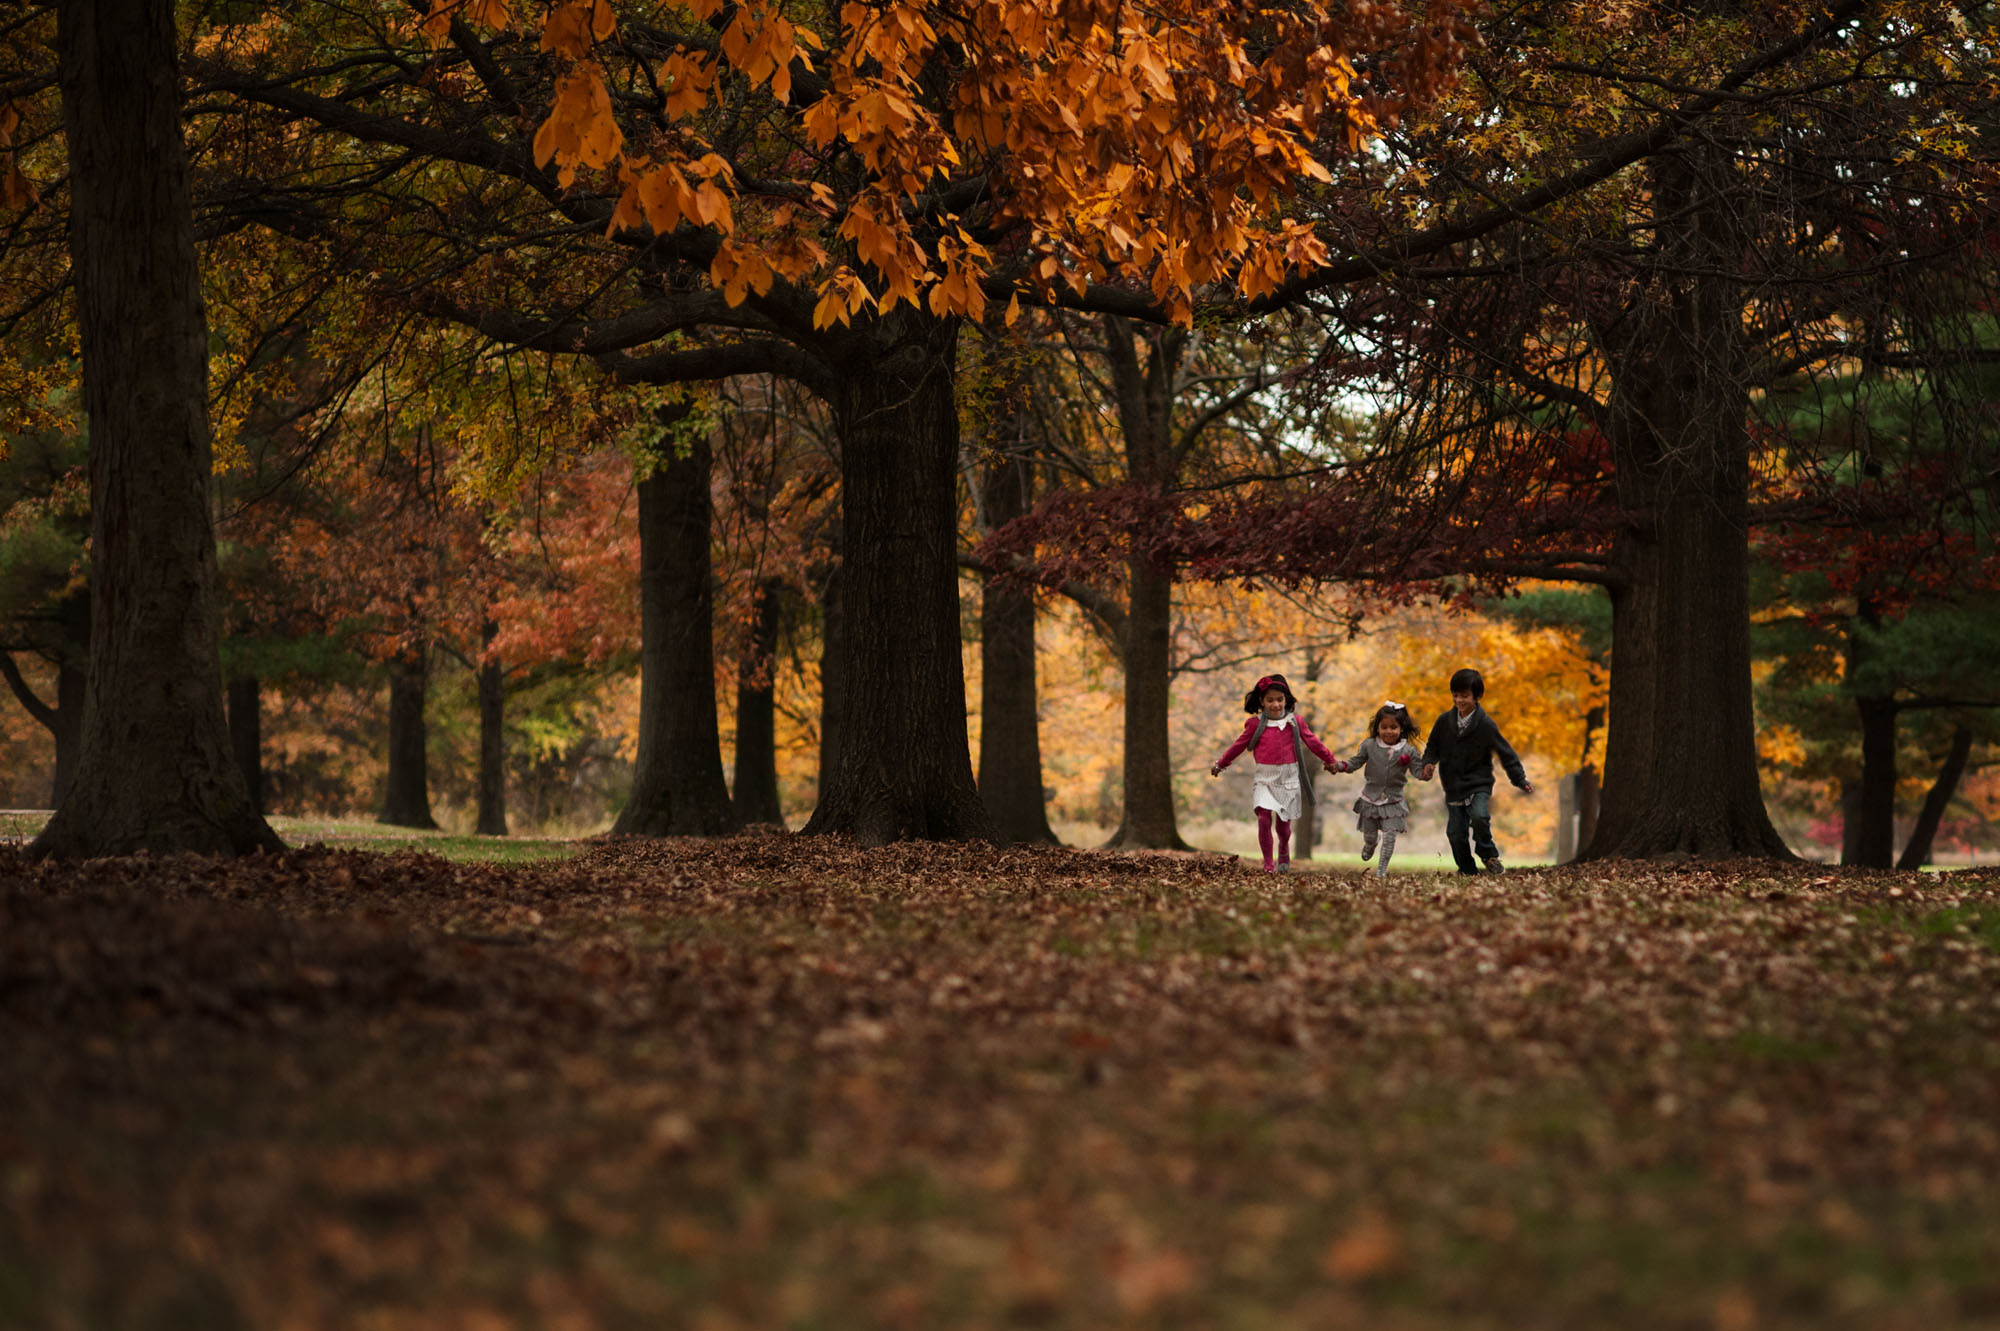 three kids running through autumn trees kellie bieser